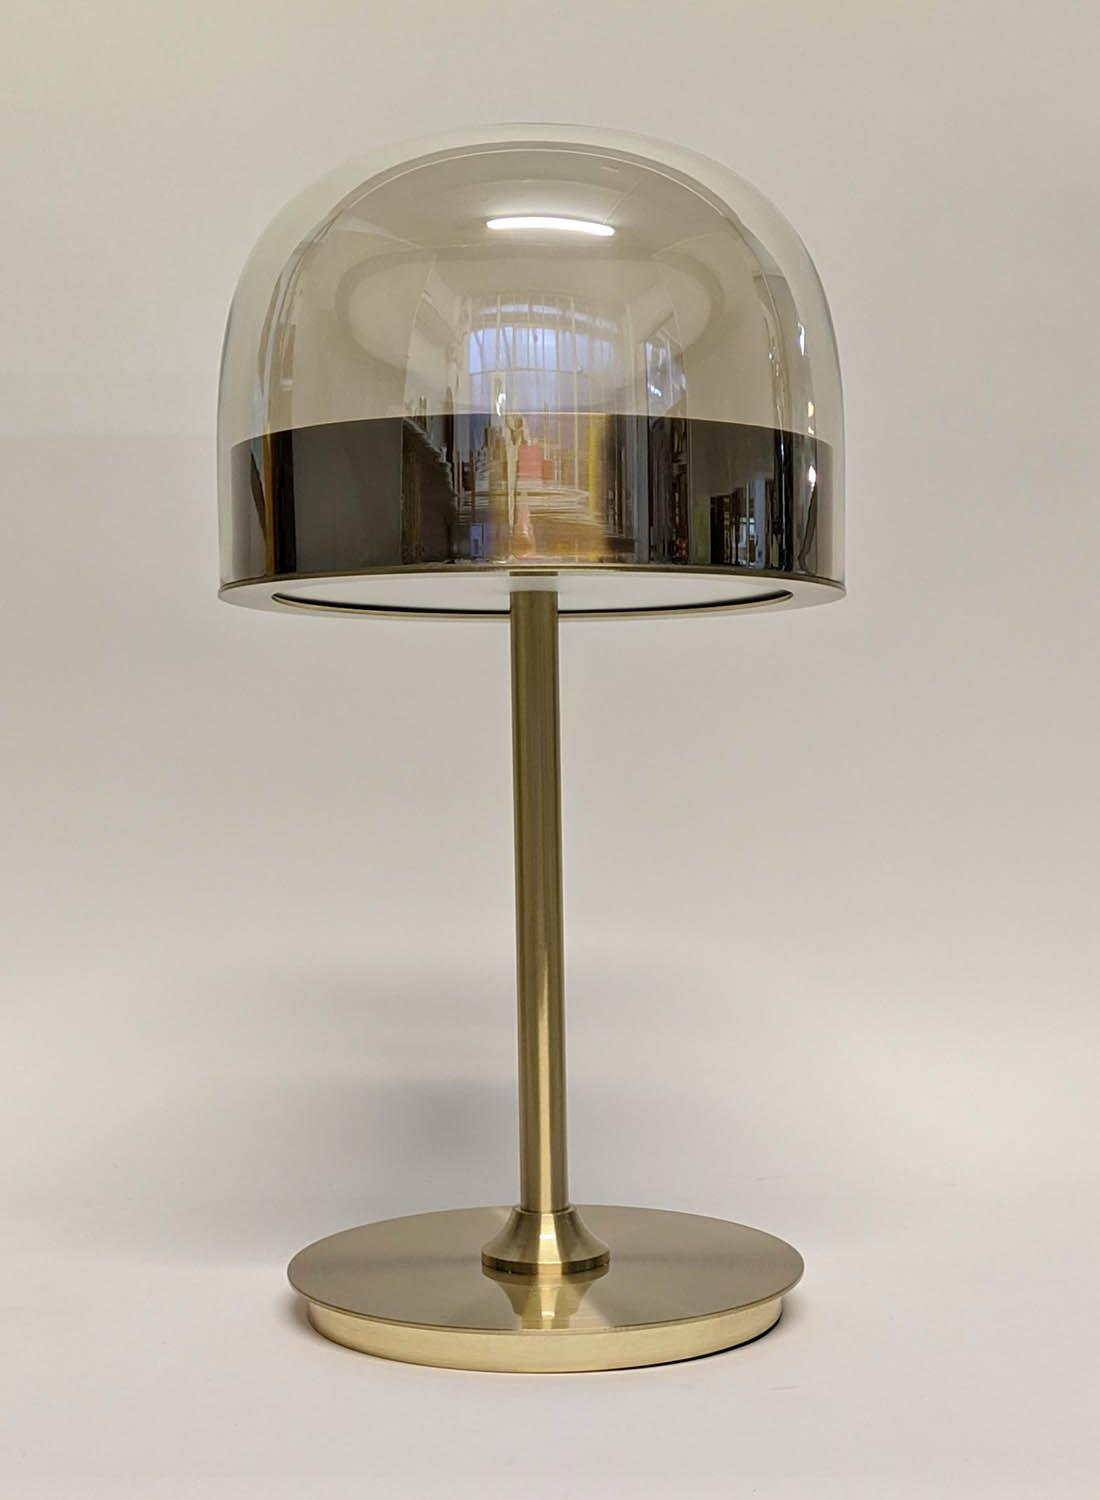 TABLE LAMP, 1950's Italian style, 45cm H. - Image 3 of 4